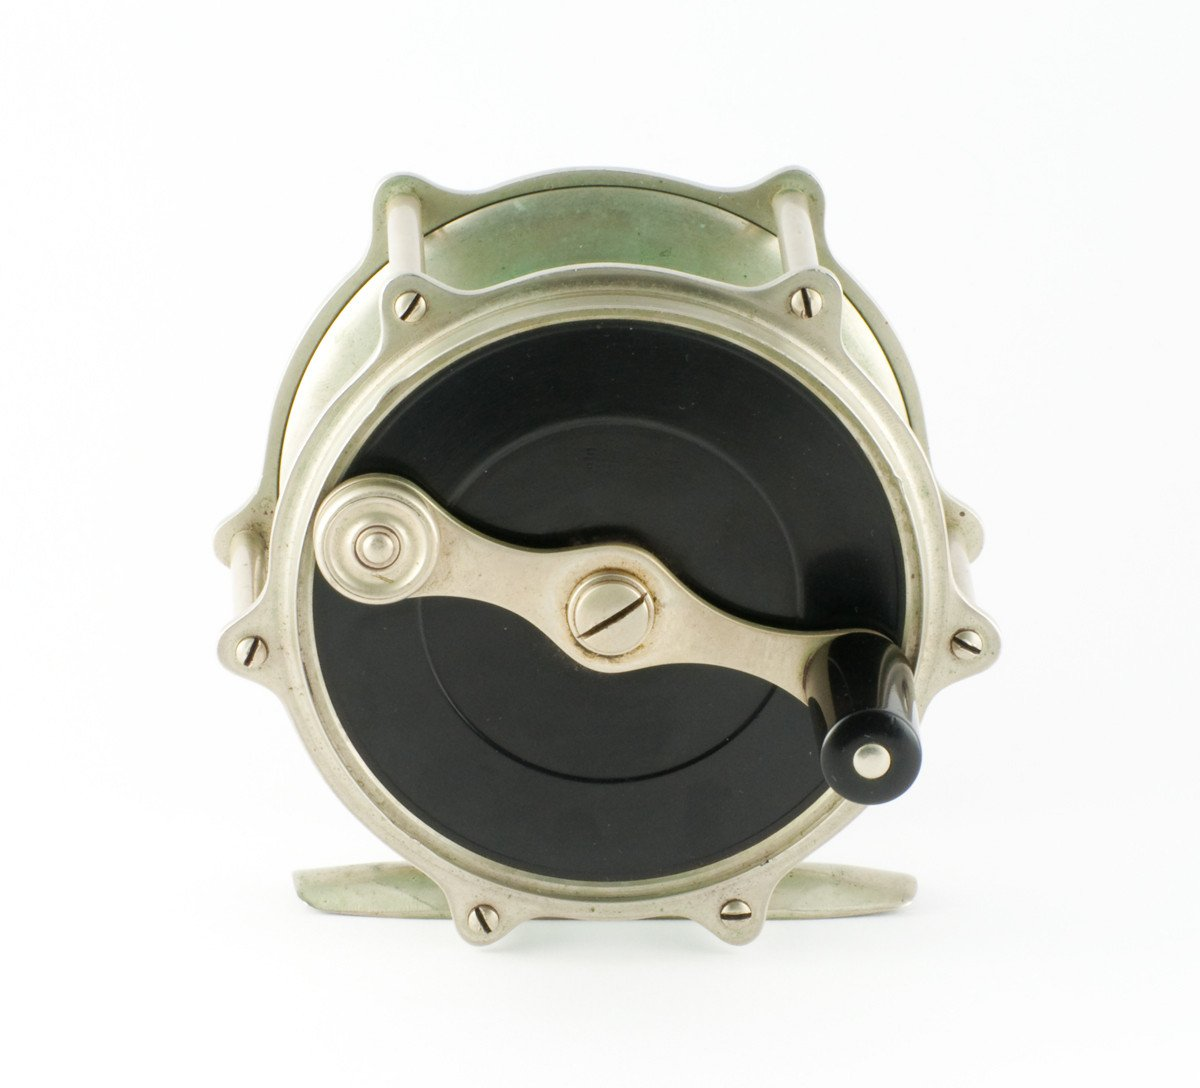 Leonard Salmon Reel - Philbrook & Paine